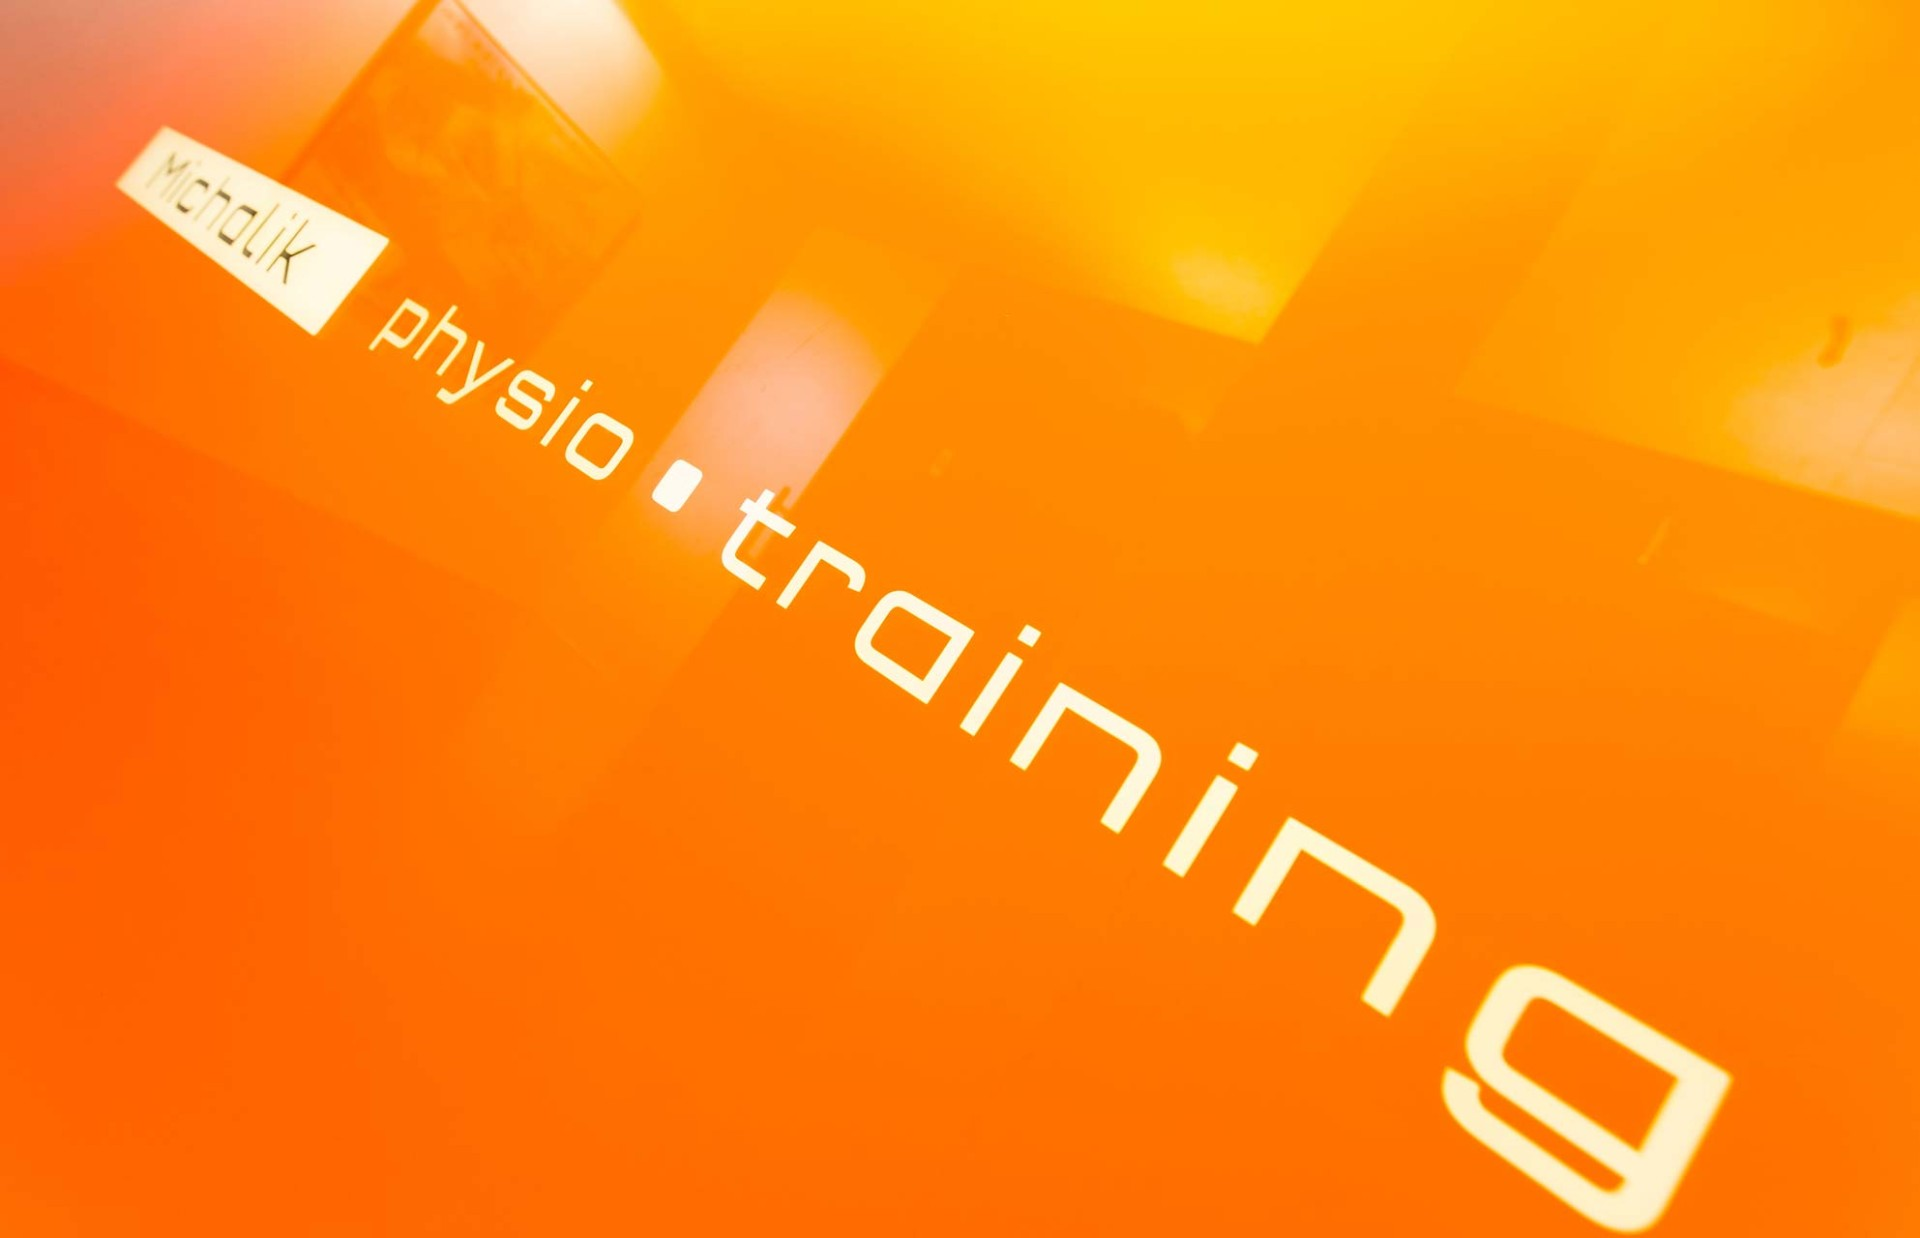 007-Michalik_Physio_und_Training.jpg